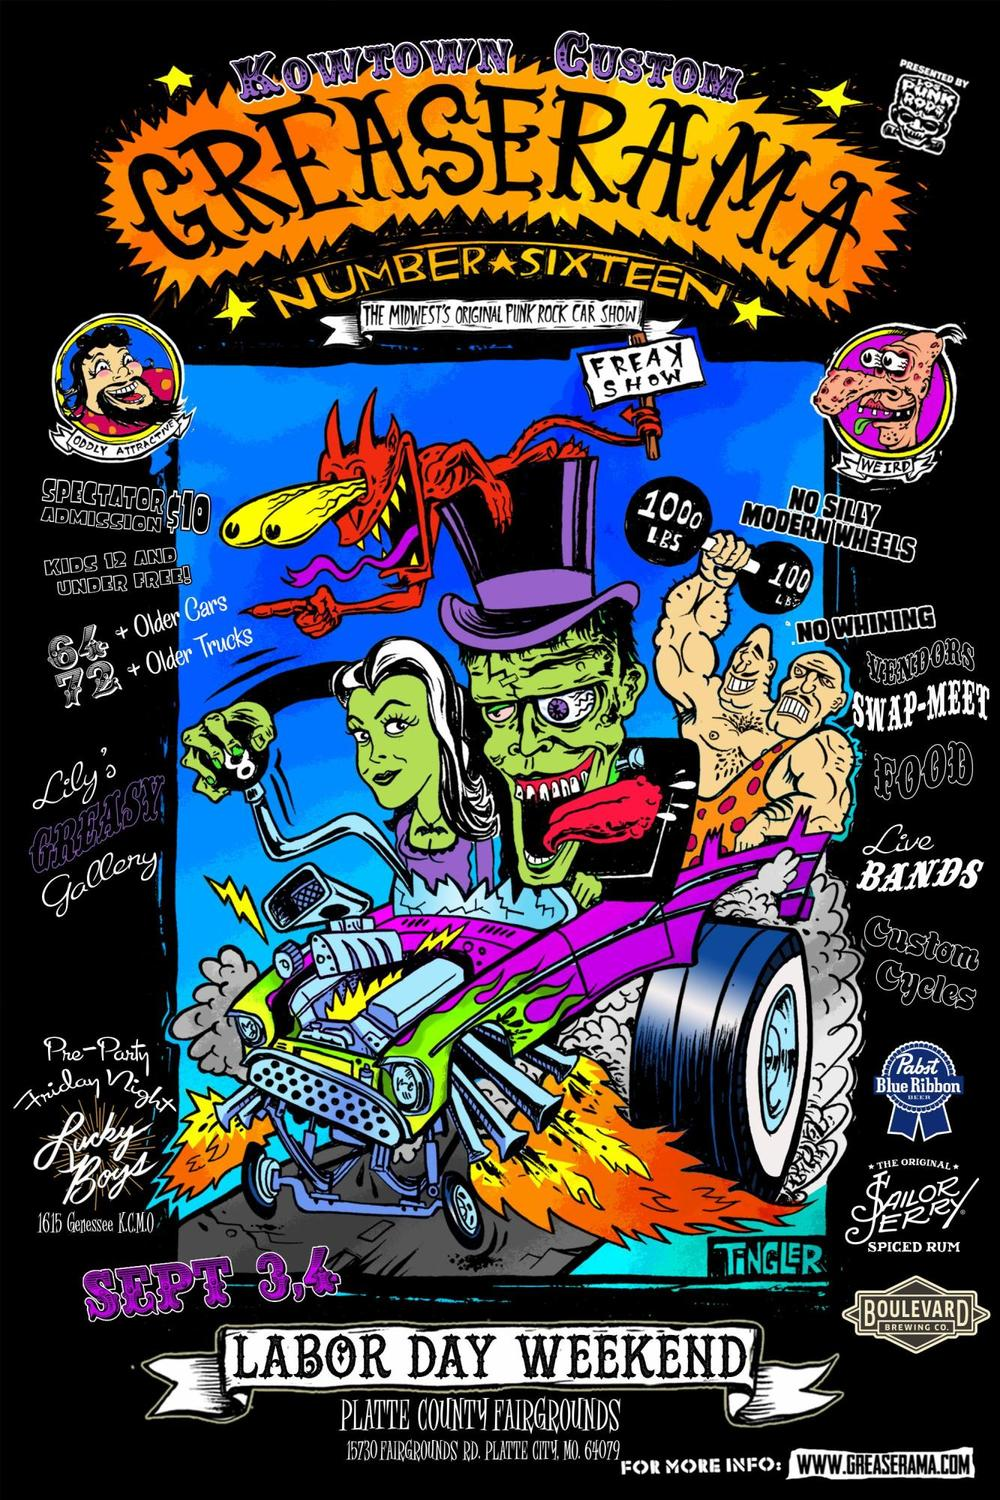 greaserama 2016 flyer